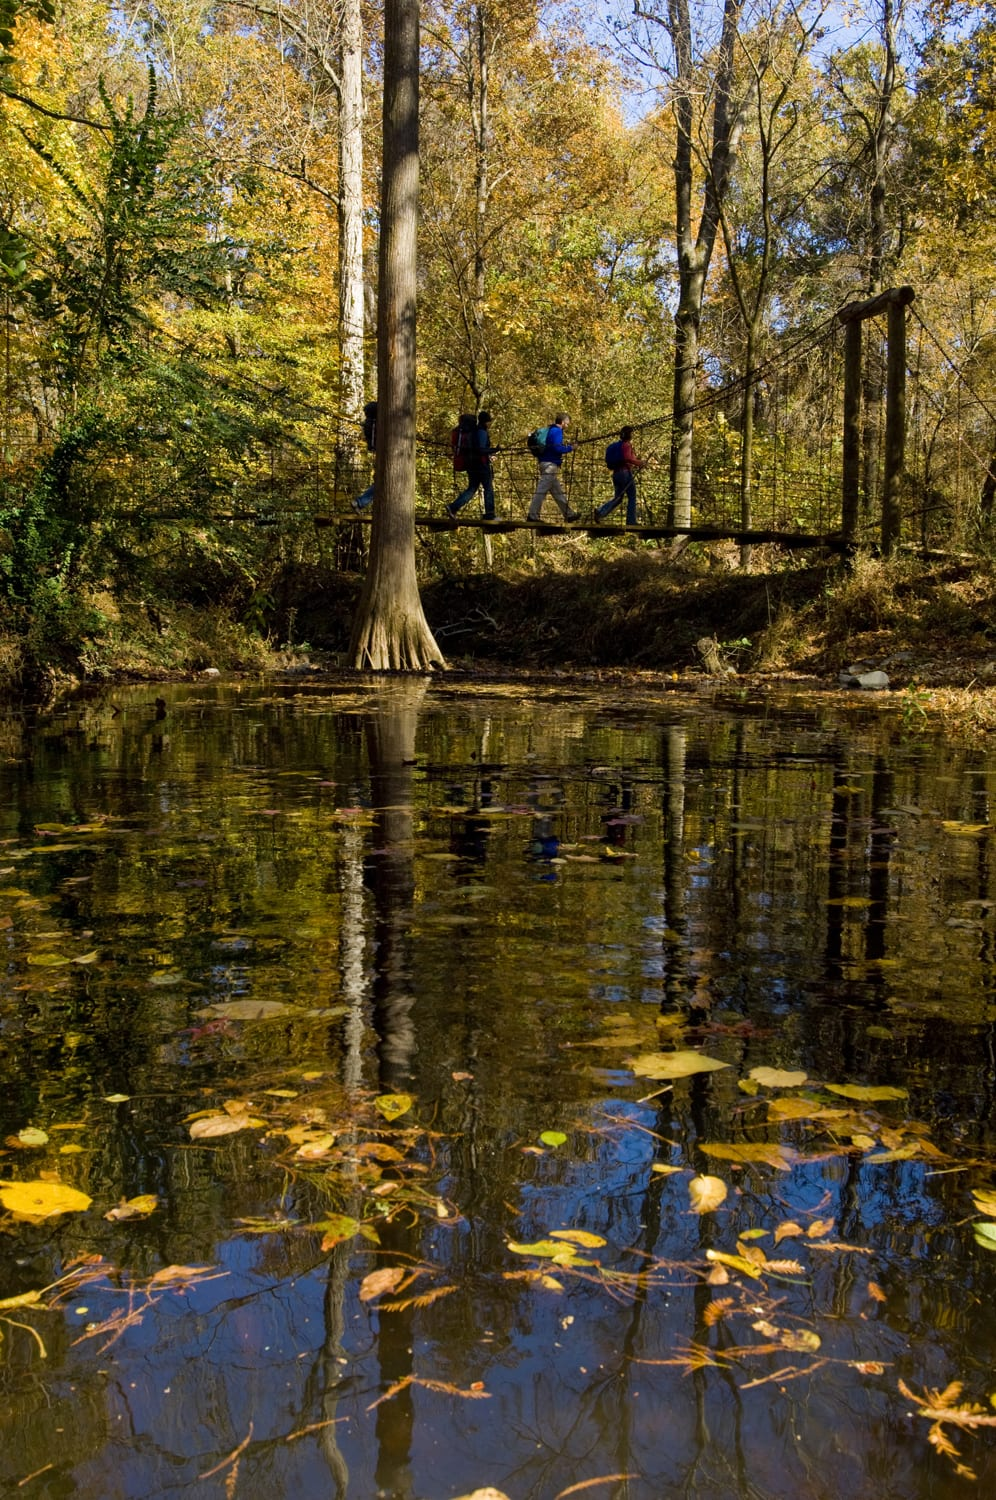 Hiking the Cane Creek Lake Trail, Cane Creek State Park. (photo courtesy of Arkansas Department of Parks & Tourism)